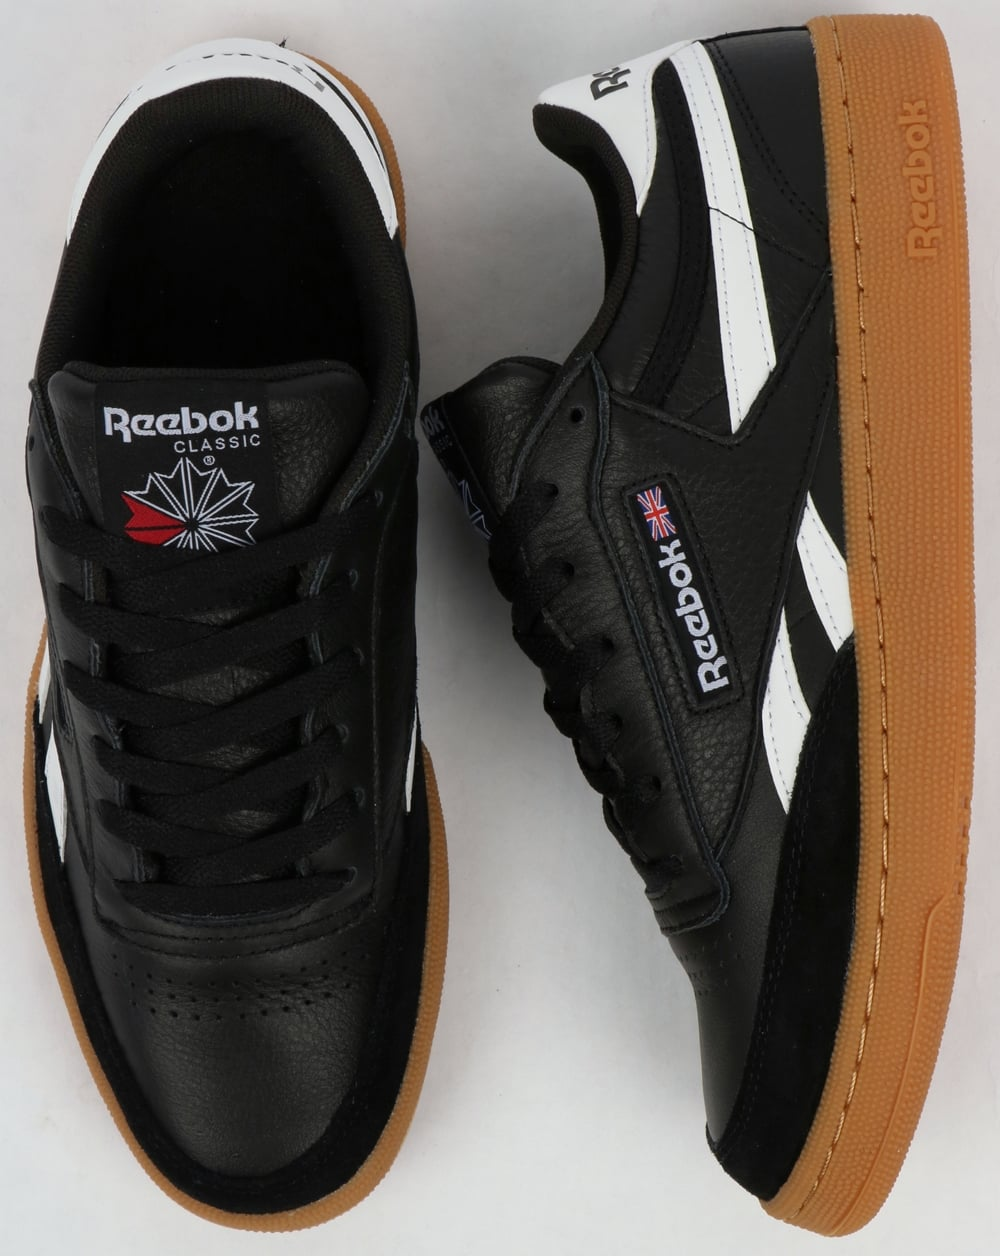 Reebok Revenge Plus Gum Trainers Black White Gum 459ba1a15